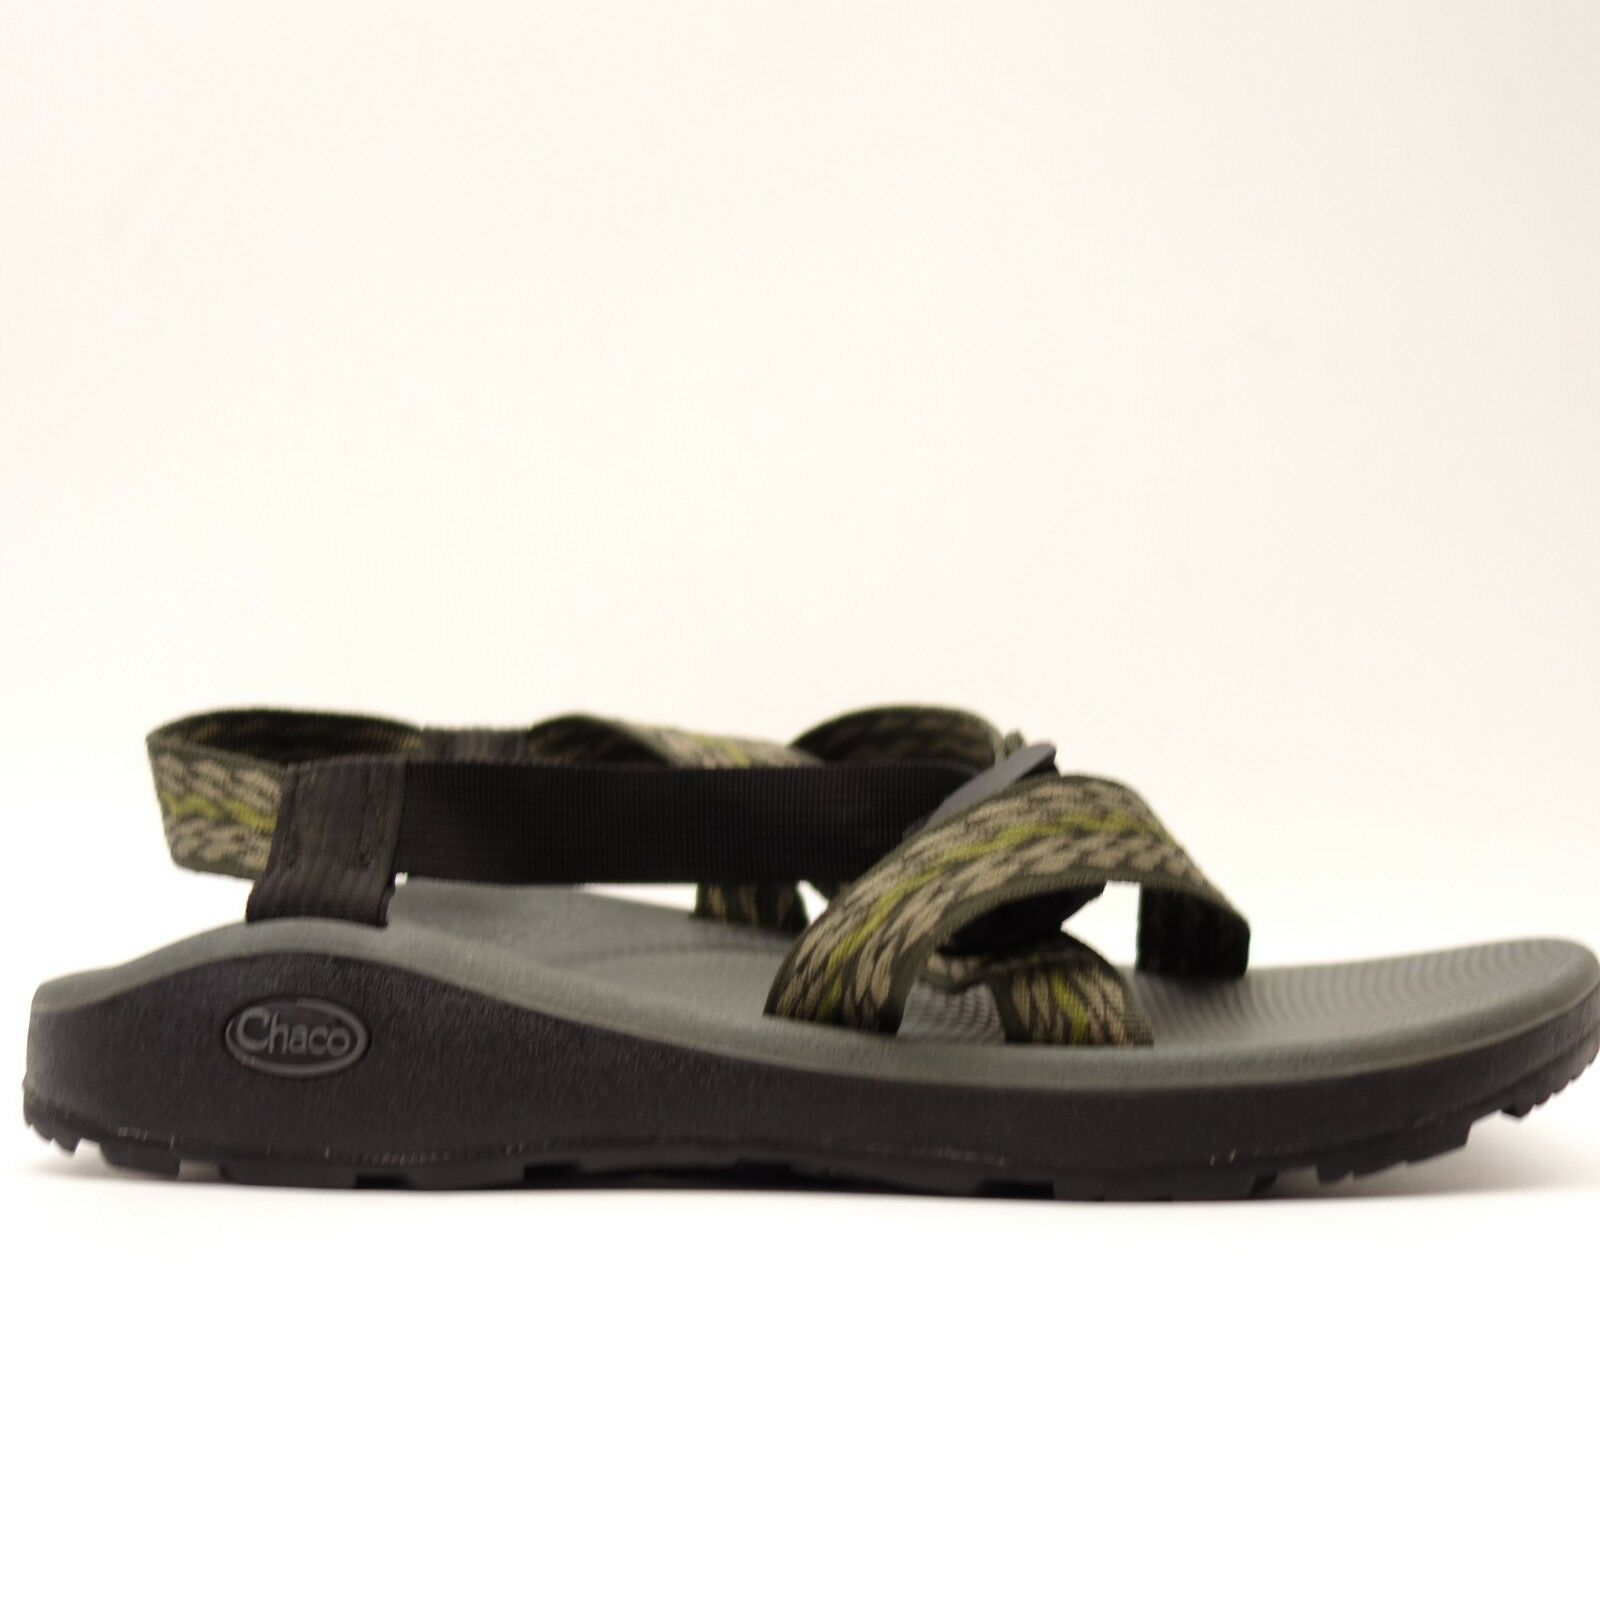 Chaco Mens Z1 Classic Black Fast Drying Comfort Casual Sandals Size 12